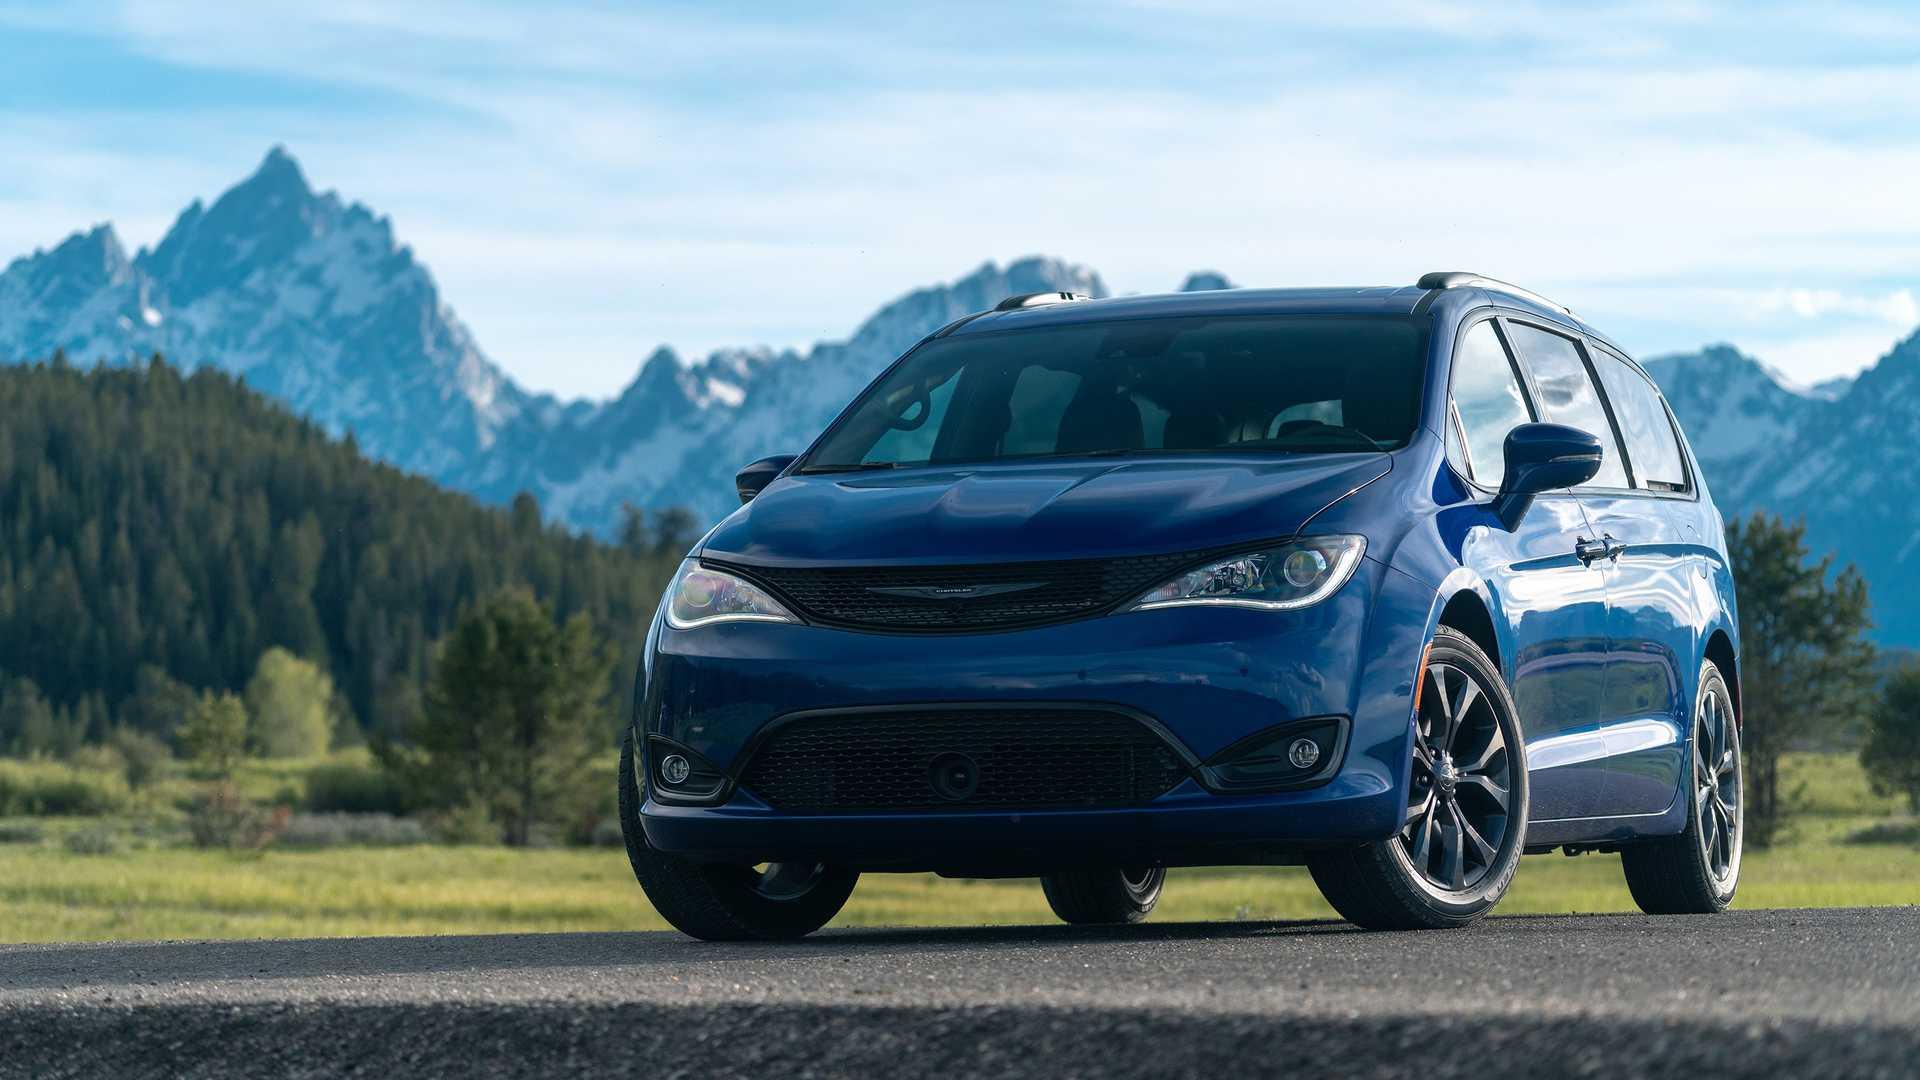 2020_Chrysler_Pacifica_Red_S_Edition_0017